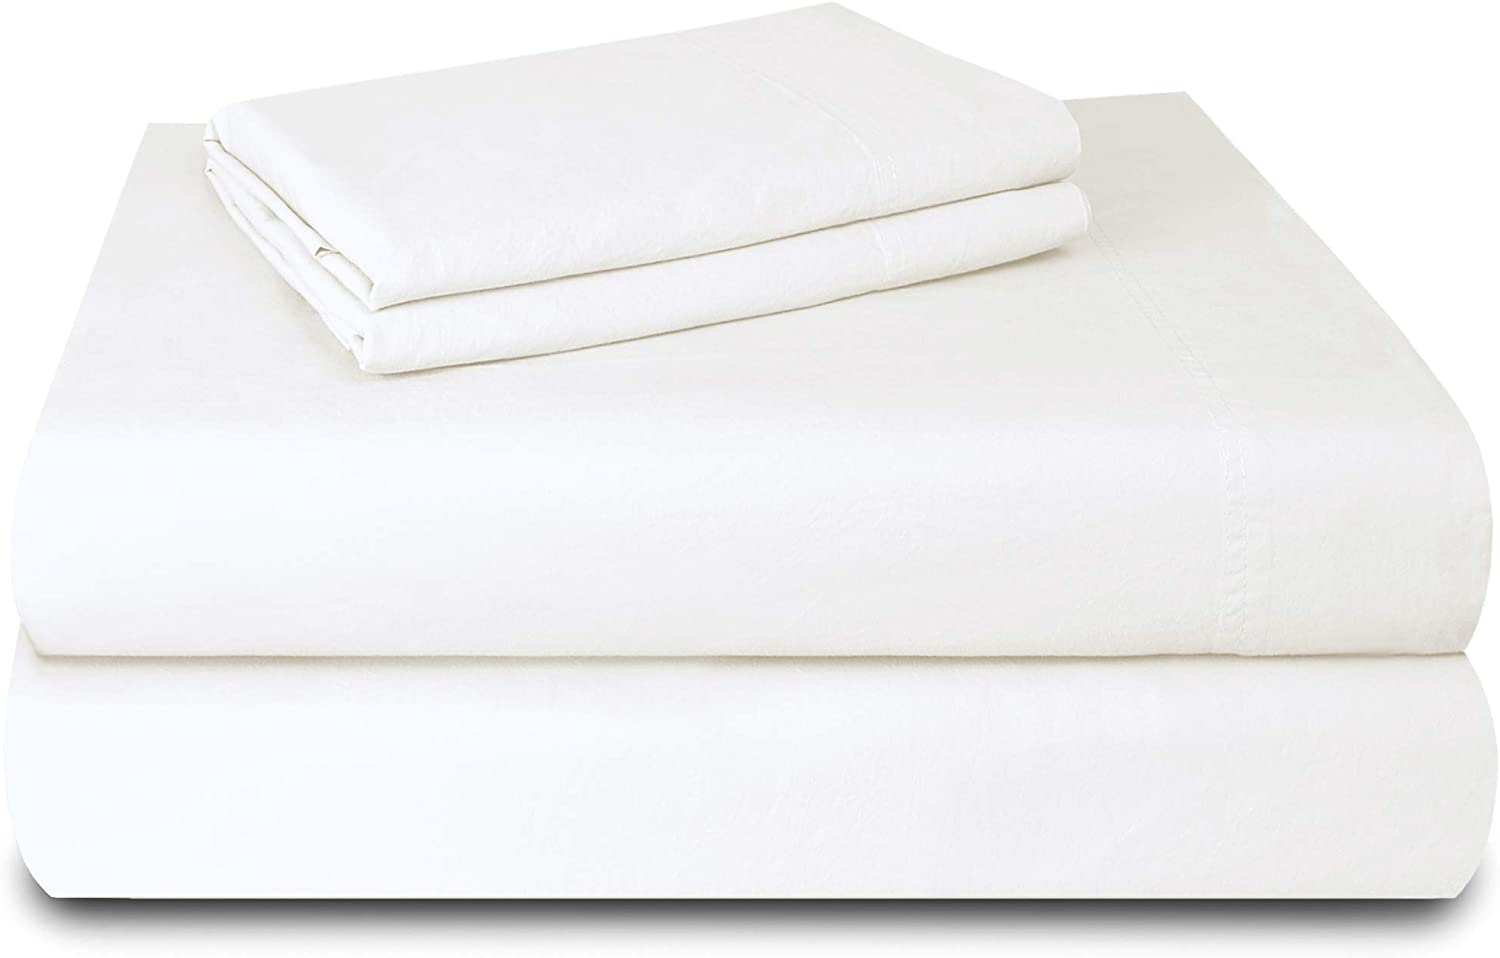 "Laundry by Design - Soft & Smooth, Pre-Shrunk 4 Piece Cotton Sheet Set, Fits Upto 16"" DEEP Pocket, Luxury Hotel Bedding, (White, King)"